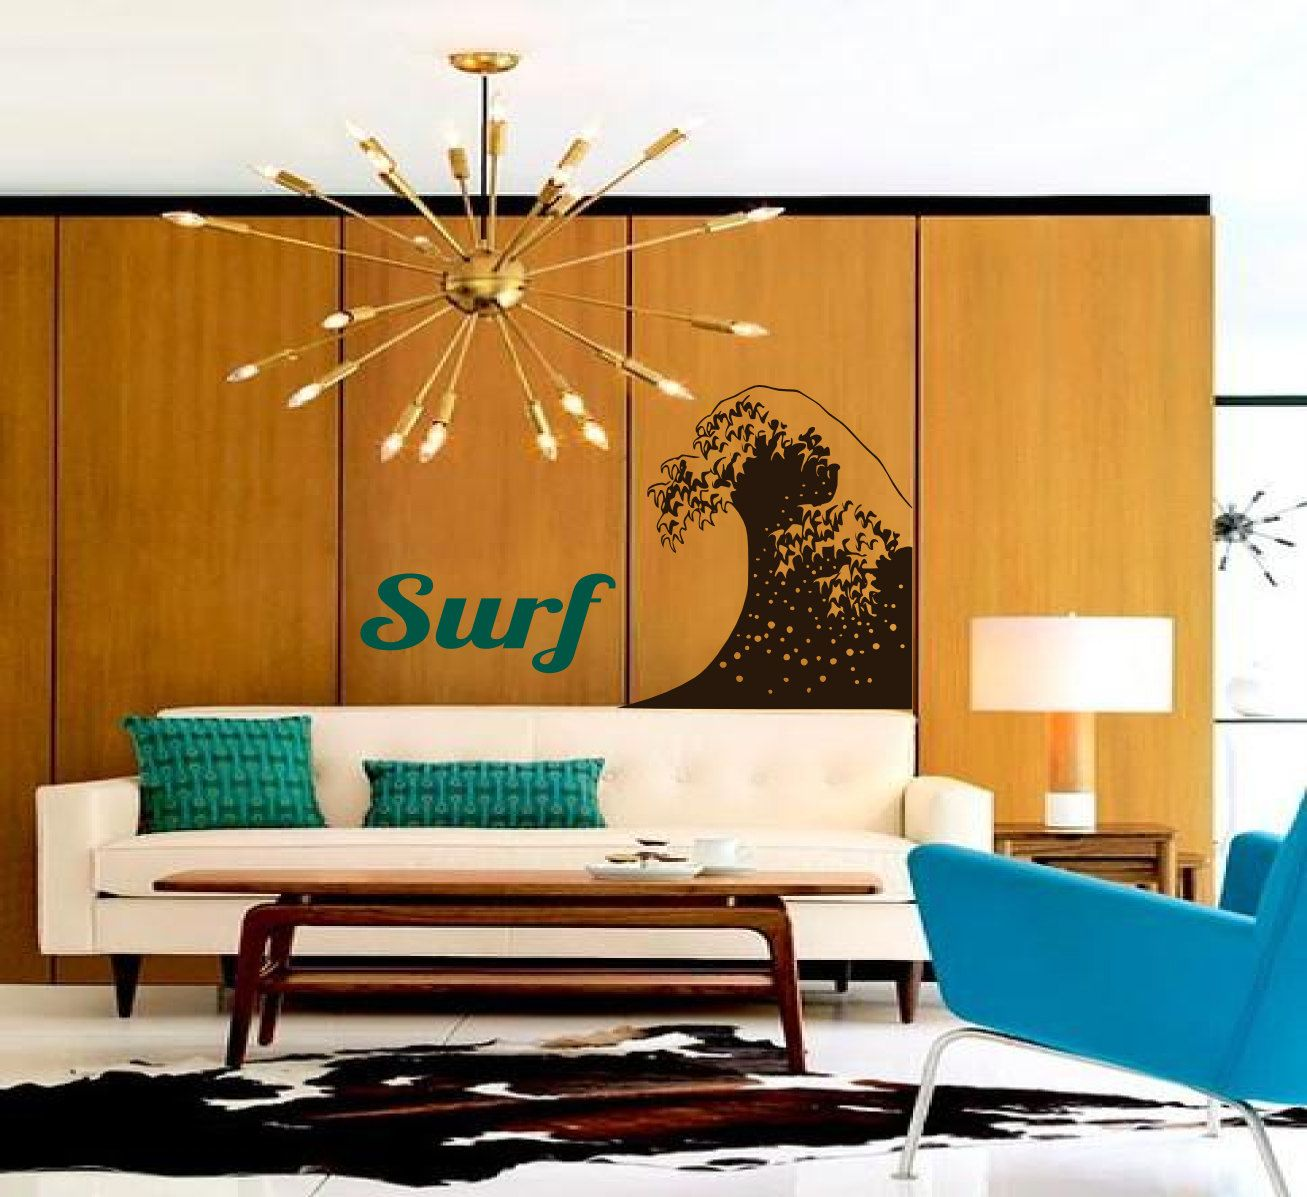 Retro Inspired Surf And Wave Combo   So Fresh Vintage  Vinyl Wall Art Words  Decal